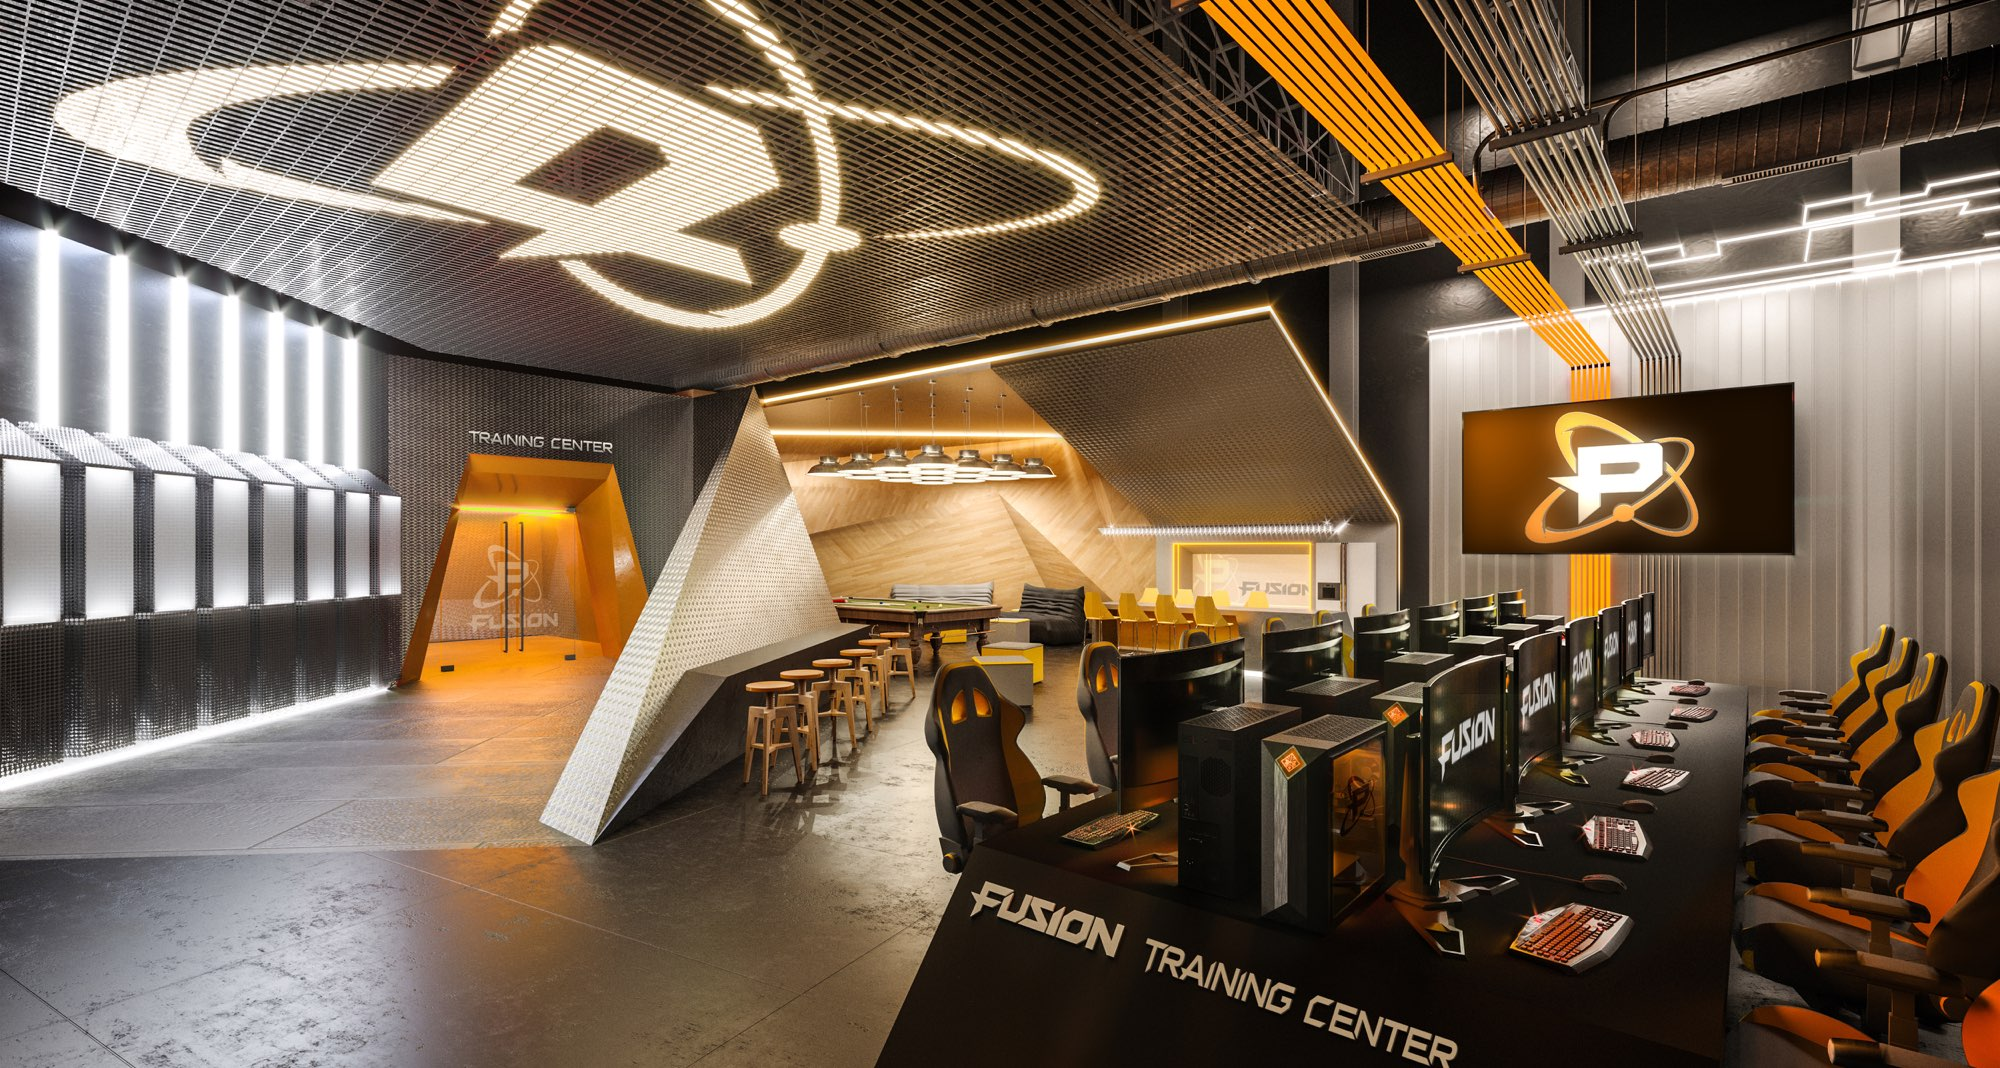 Fusion Arena Training Center